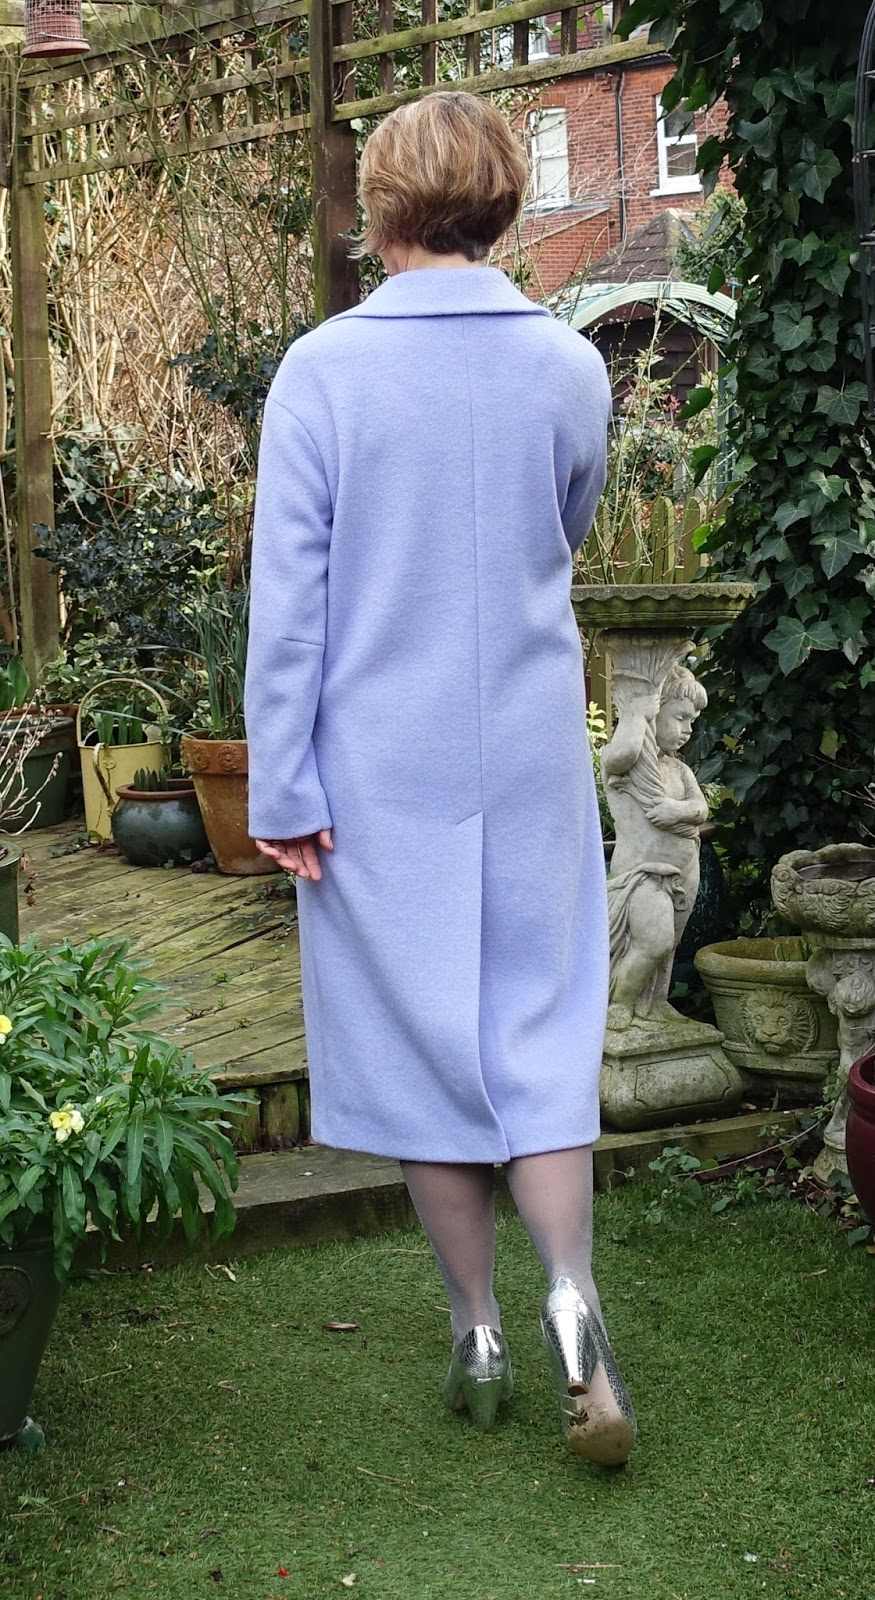 Image showing the back of a woman in long wool lilac coat and silver cone heeled shoes.